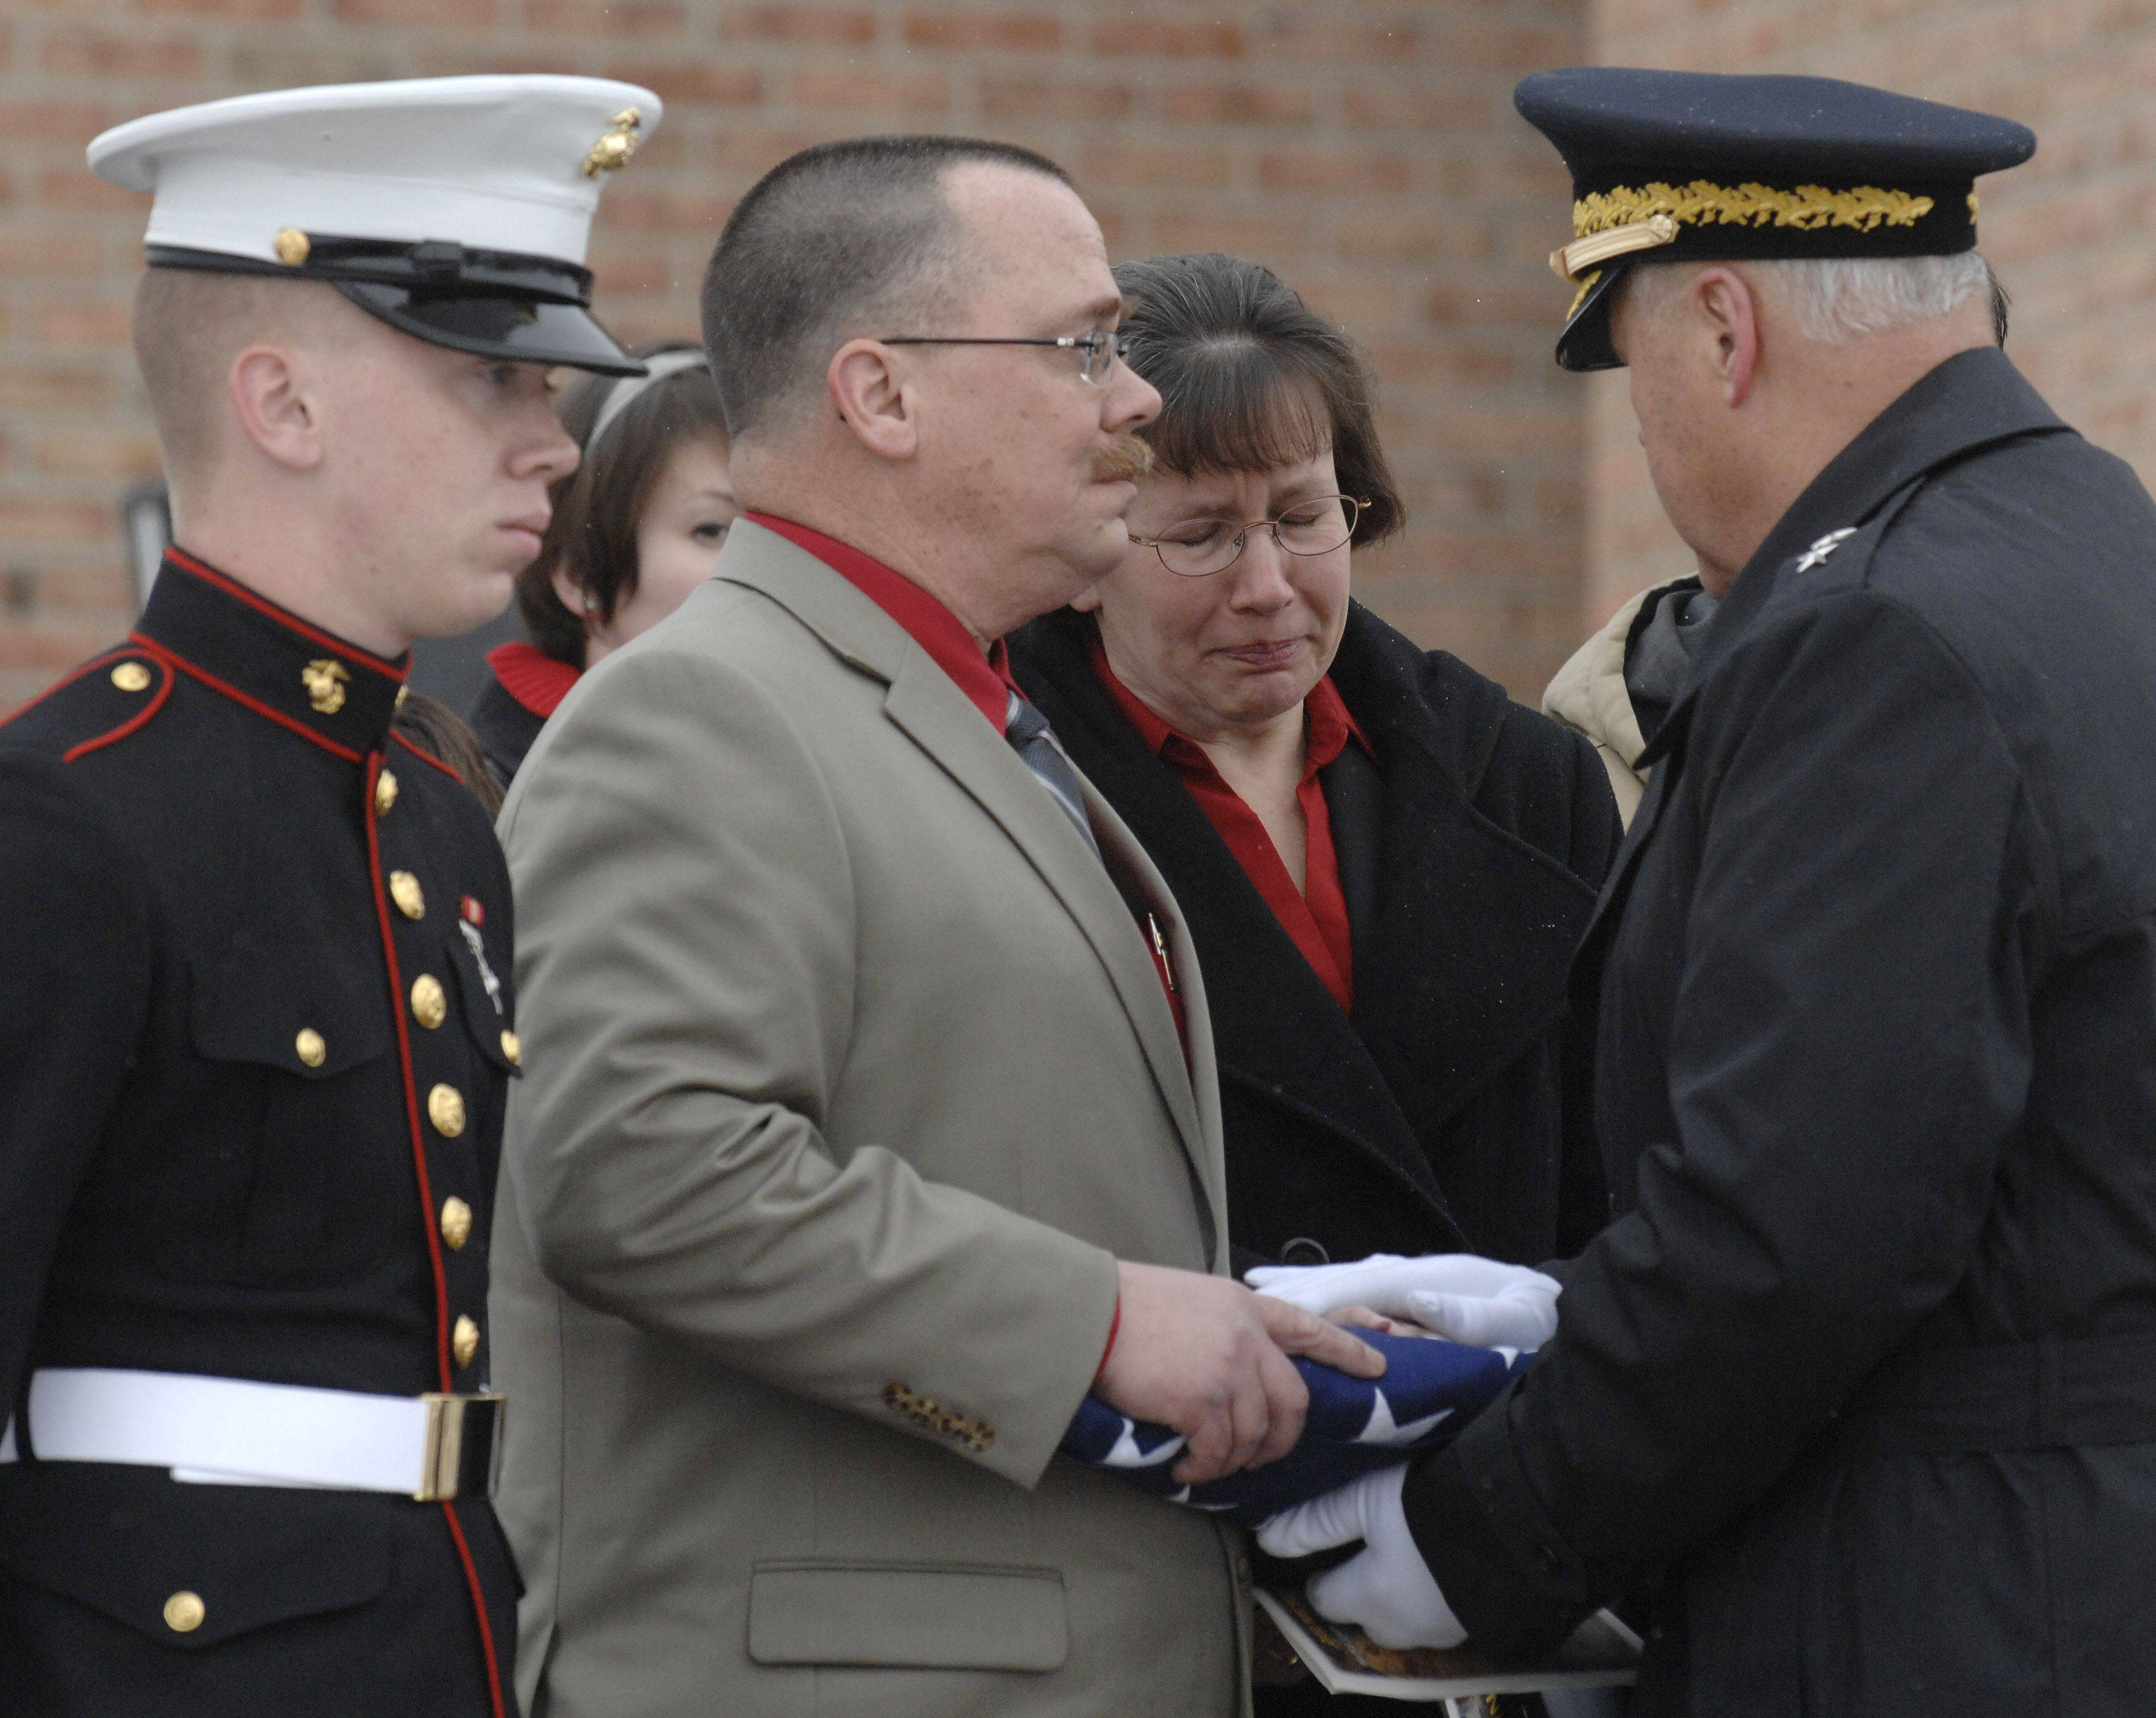 Major General R. Martin Umbarger of the Indiana National Guard presents the flag, which draped the casket of Spc. Christopher Patterson, to his parents Bob and Mary Patterson. The Pattersons' son Carl is at left.